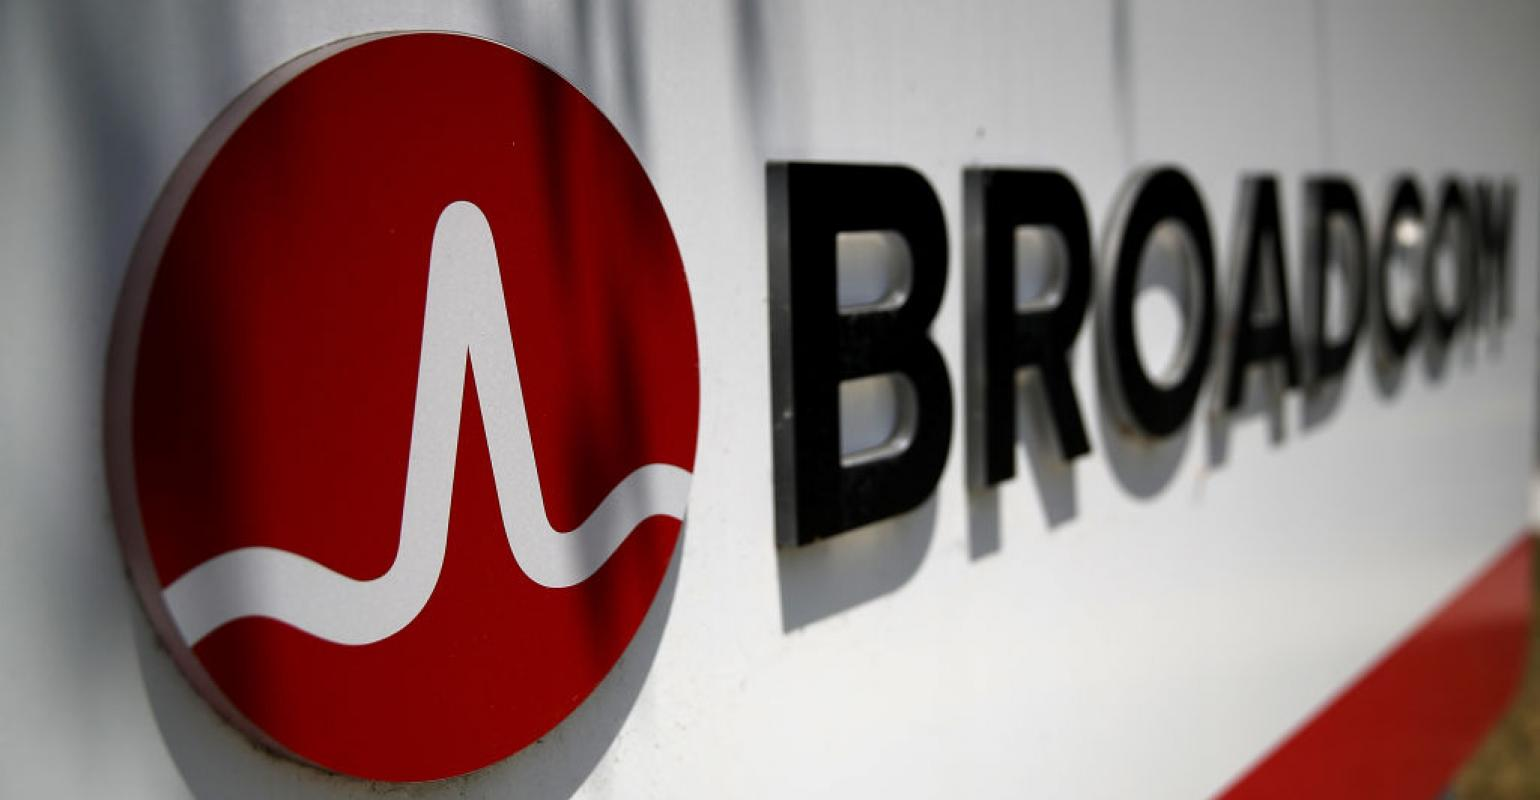 Broadcom Tanks After $18 9 Billion CA Purchase Puzzles